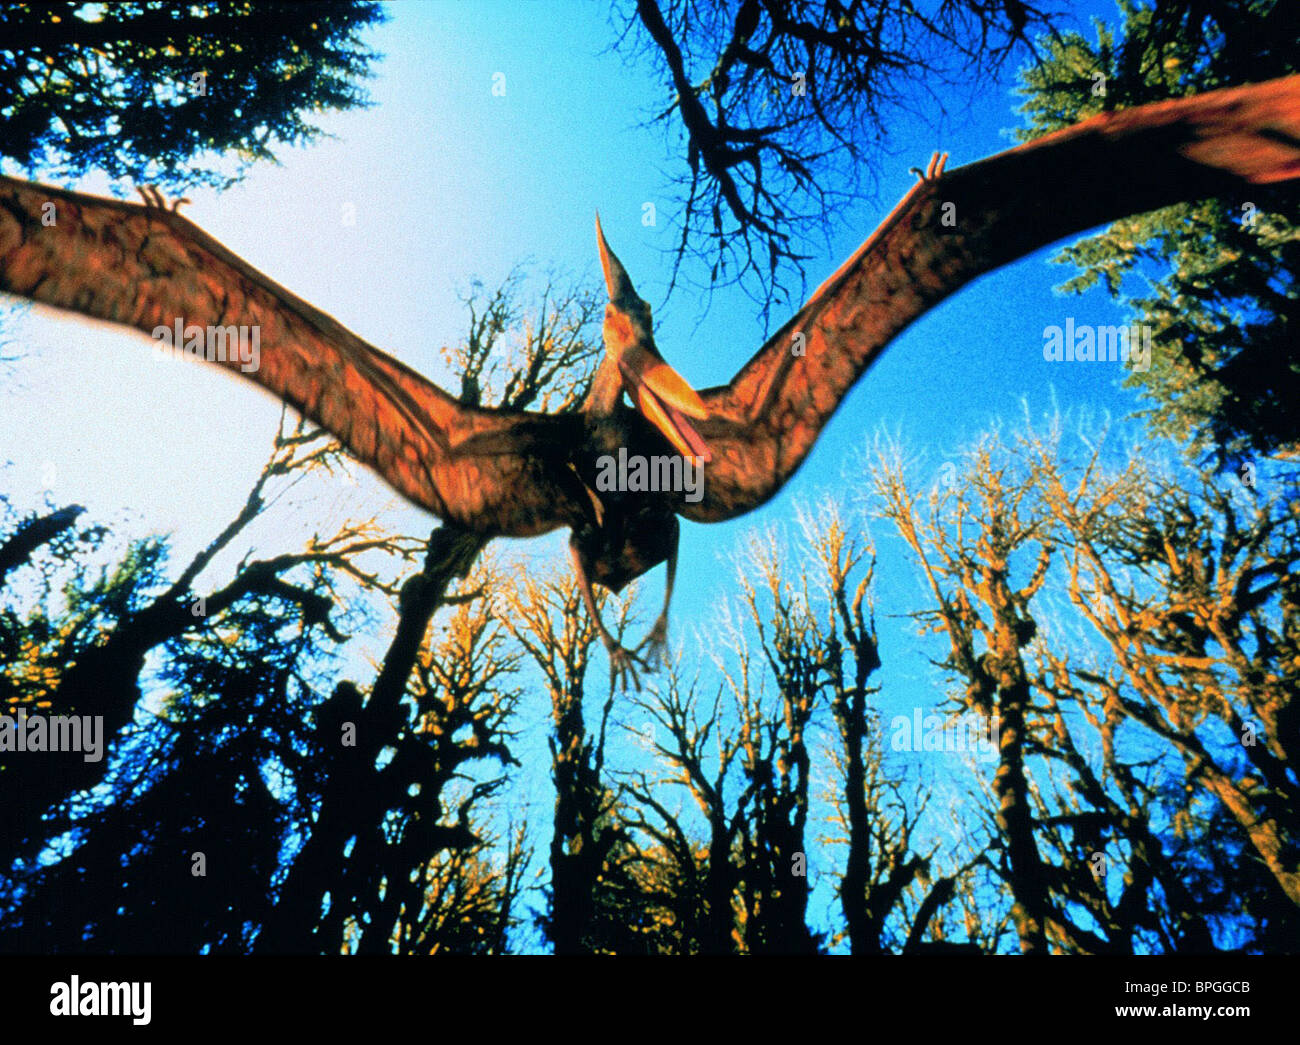 PTERANODON T-REX: BACK TO THE CRETACEOUS (1998) - Stock Image